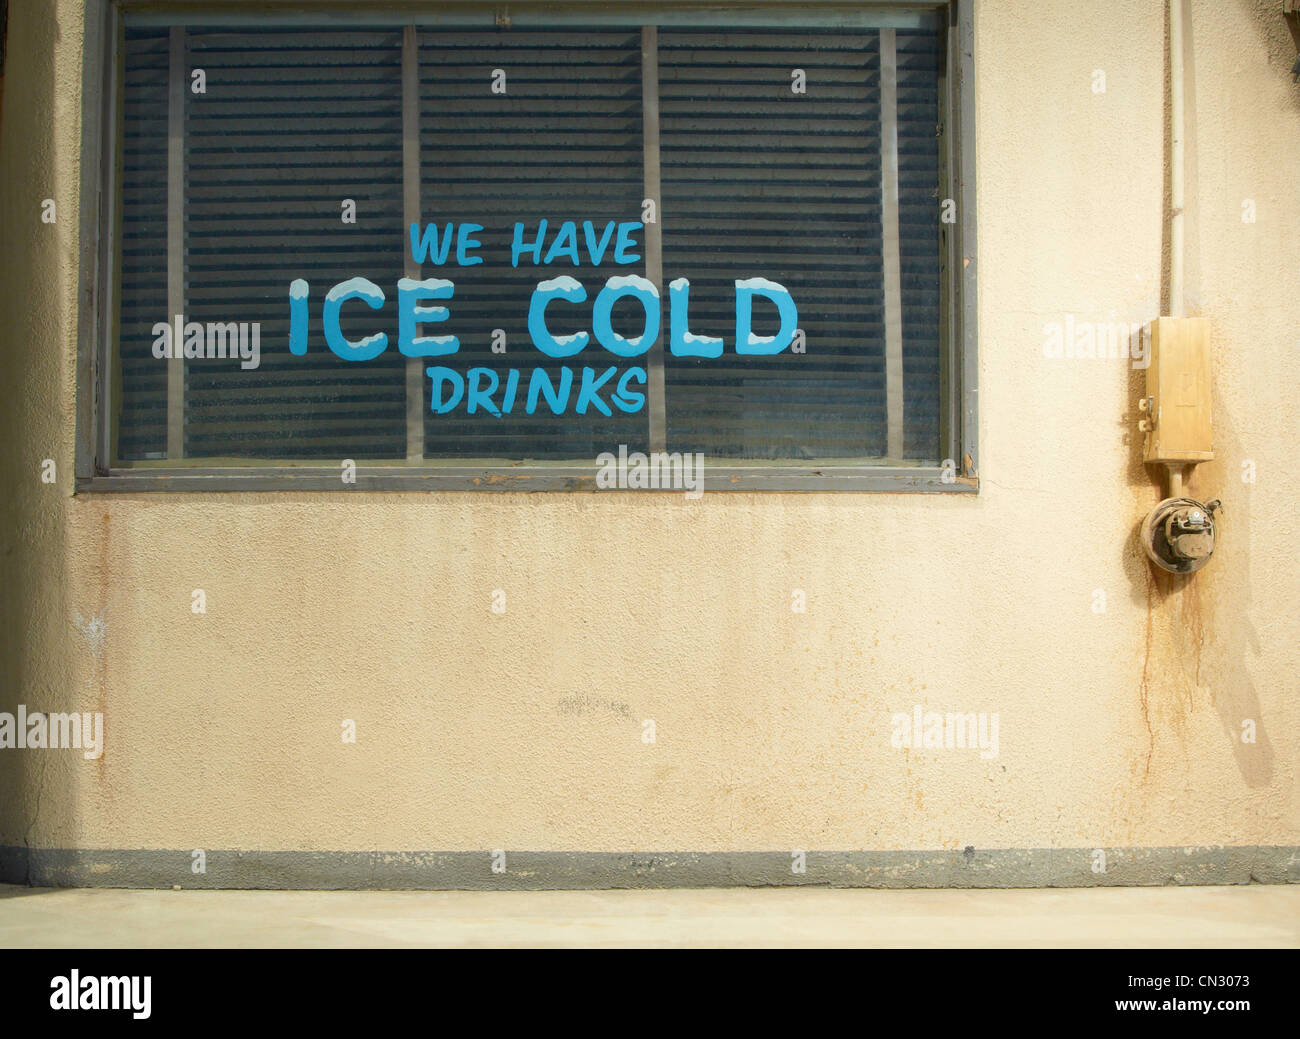 Ice cold drinks sign at a diner, California, USA - Stock Image